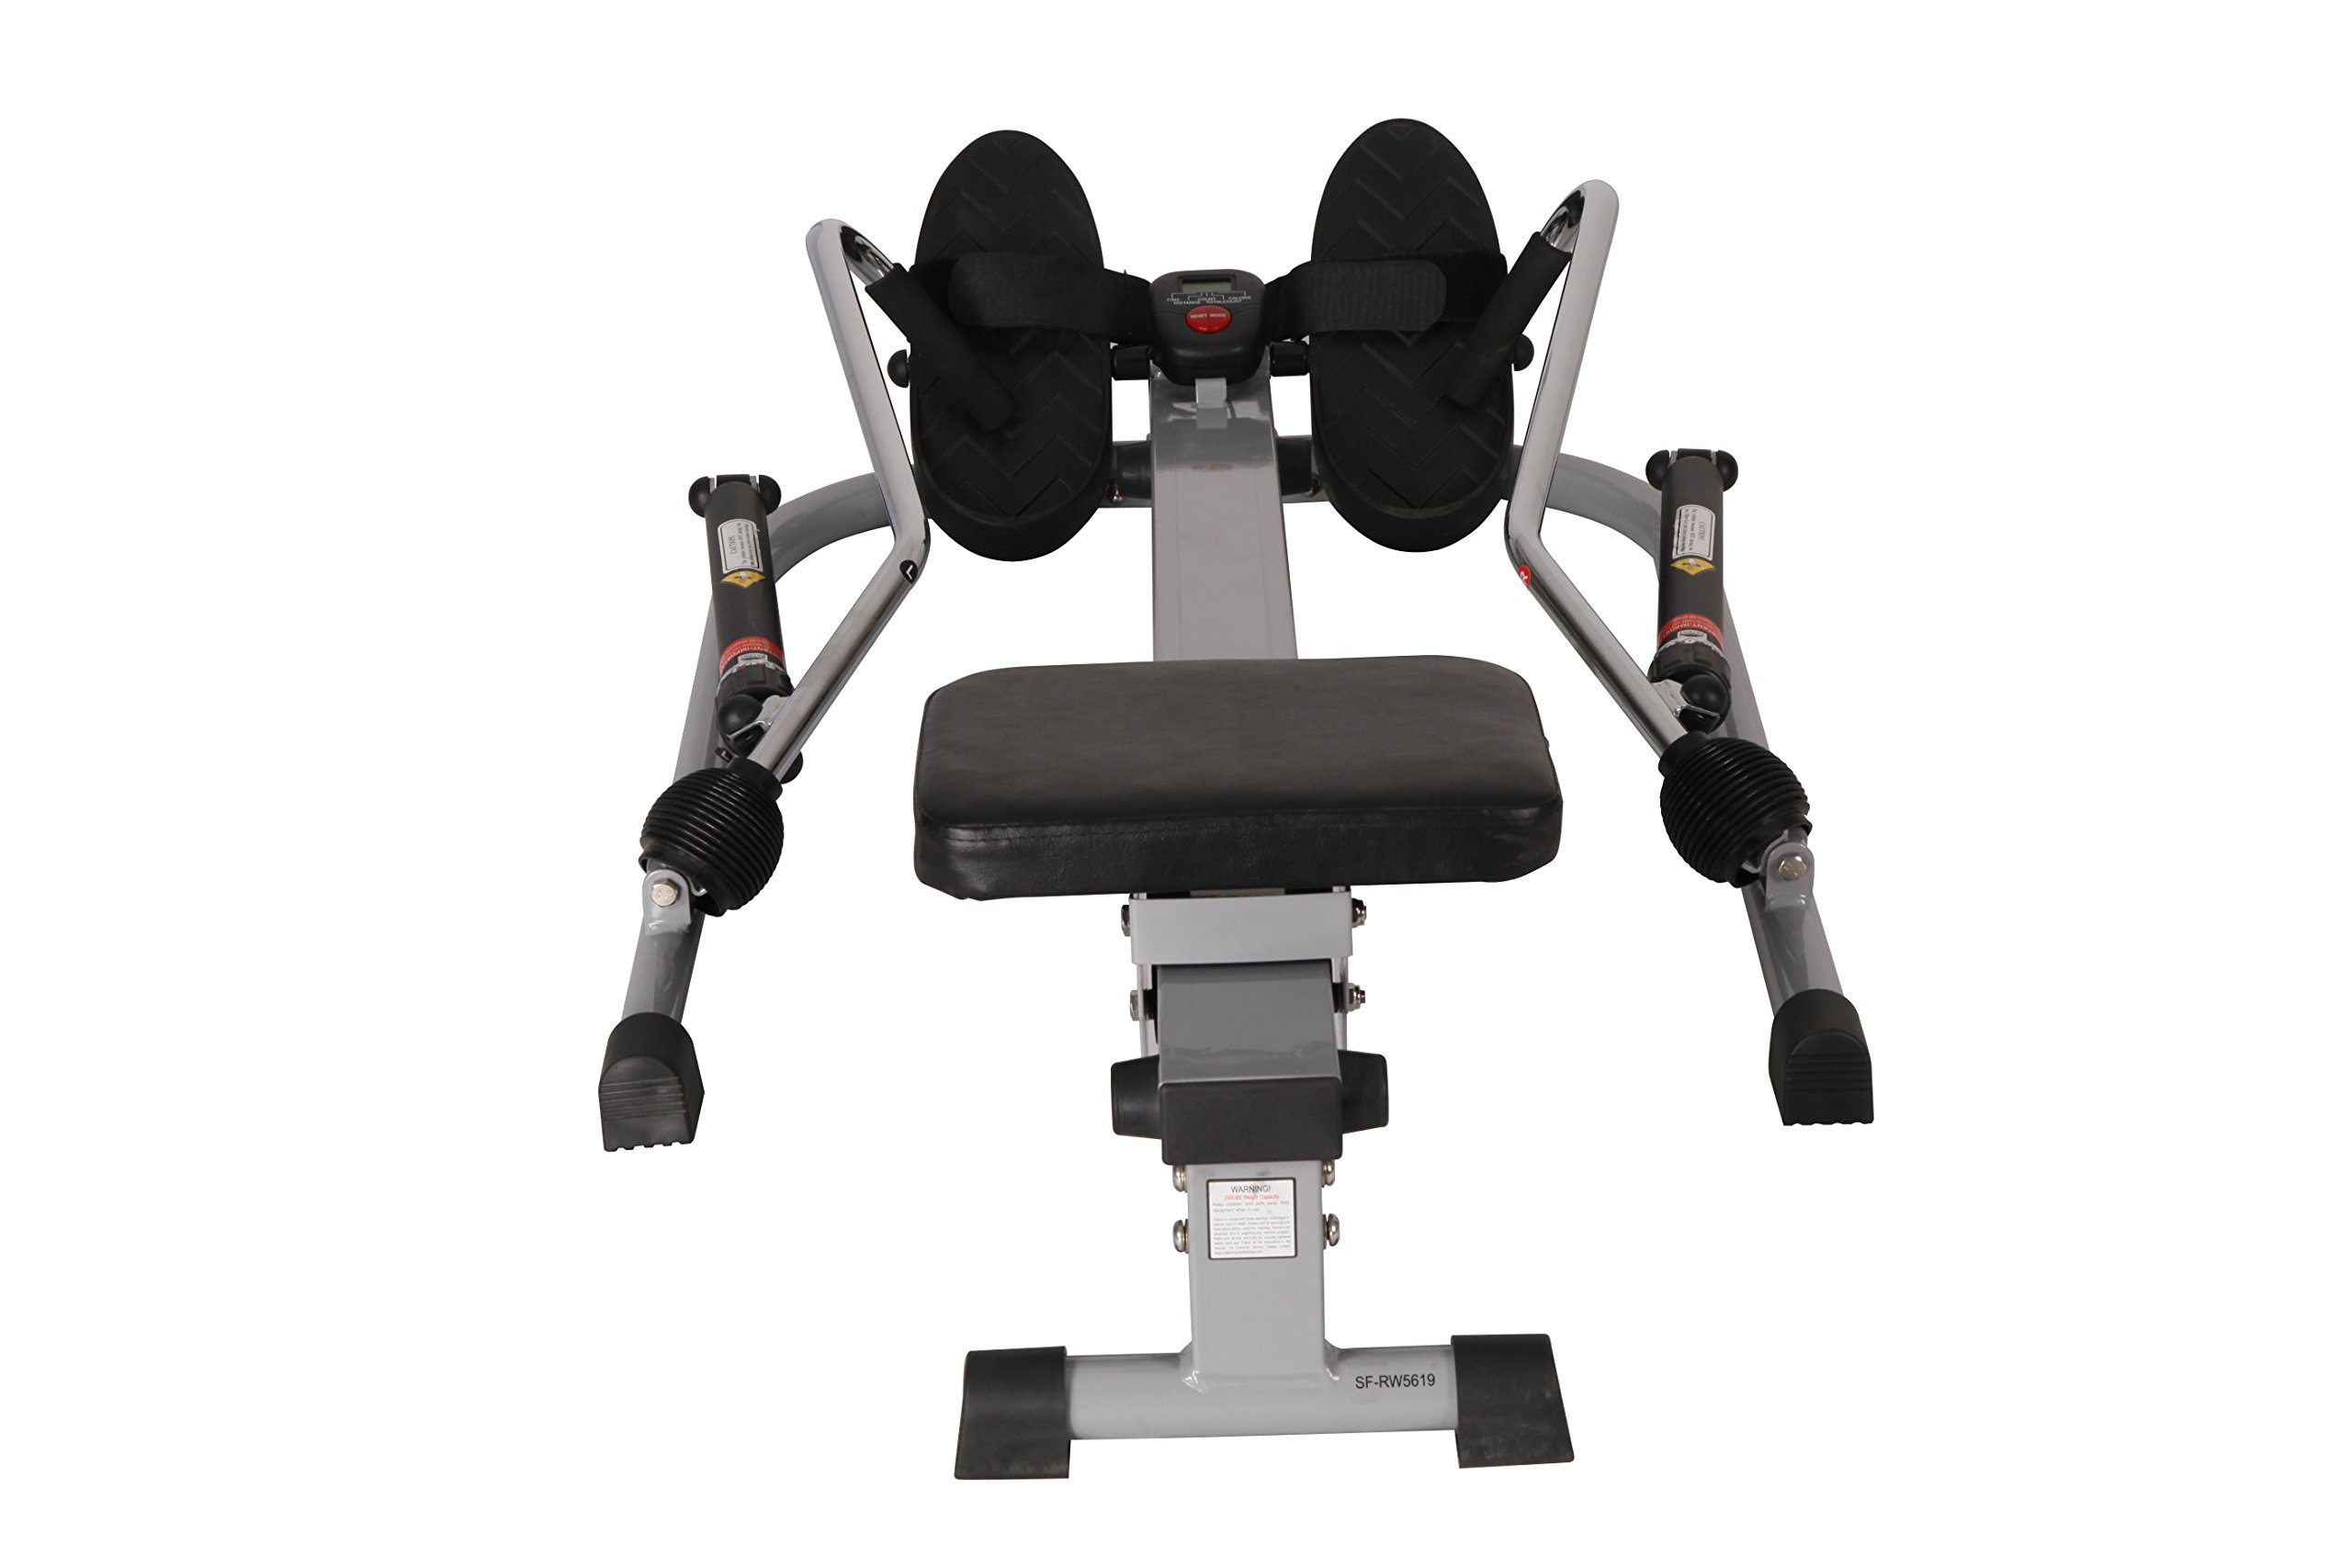 Sunny Health & Fitness SF-RW5619 12 Level Resistance Rowing Machine Rower w/ Independent Arms by Sunny Health & Fitness (Image #4)